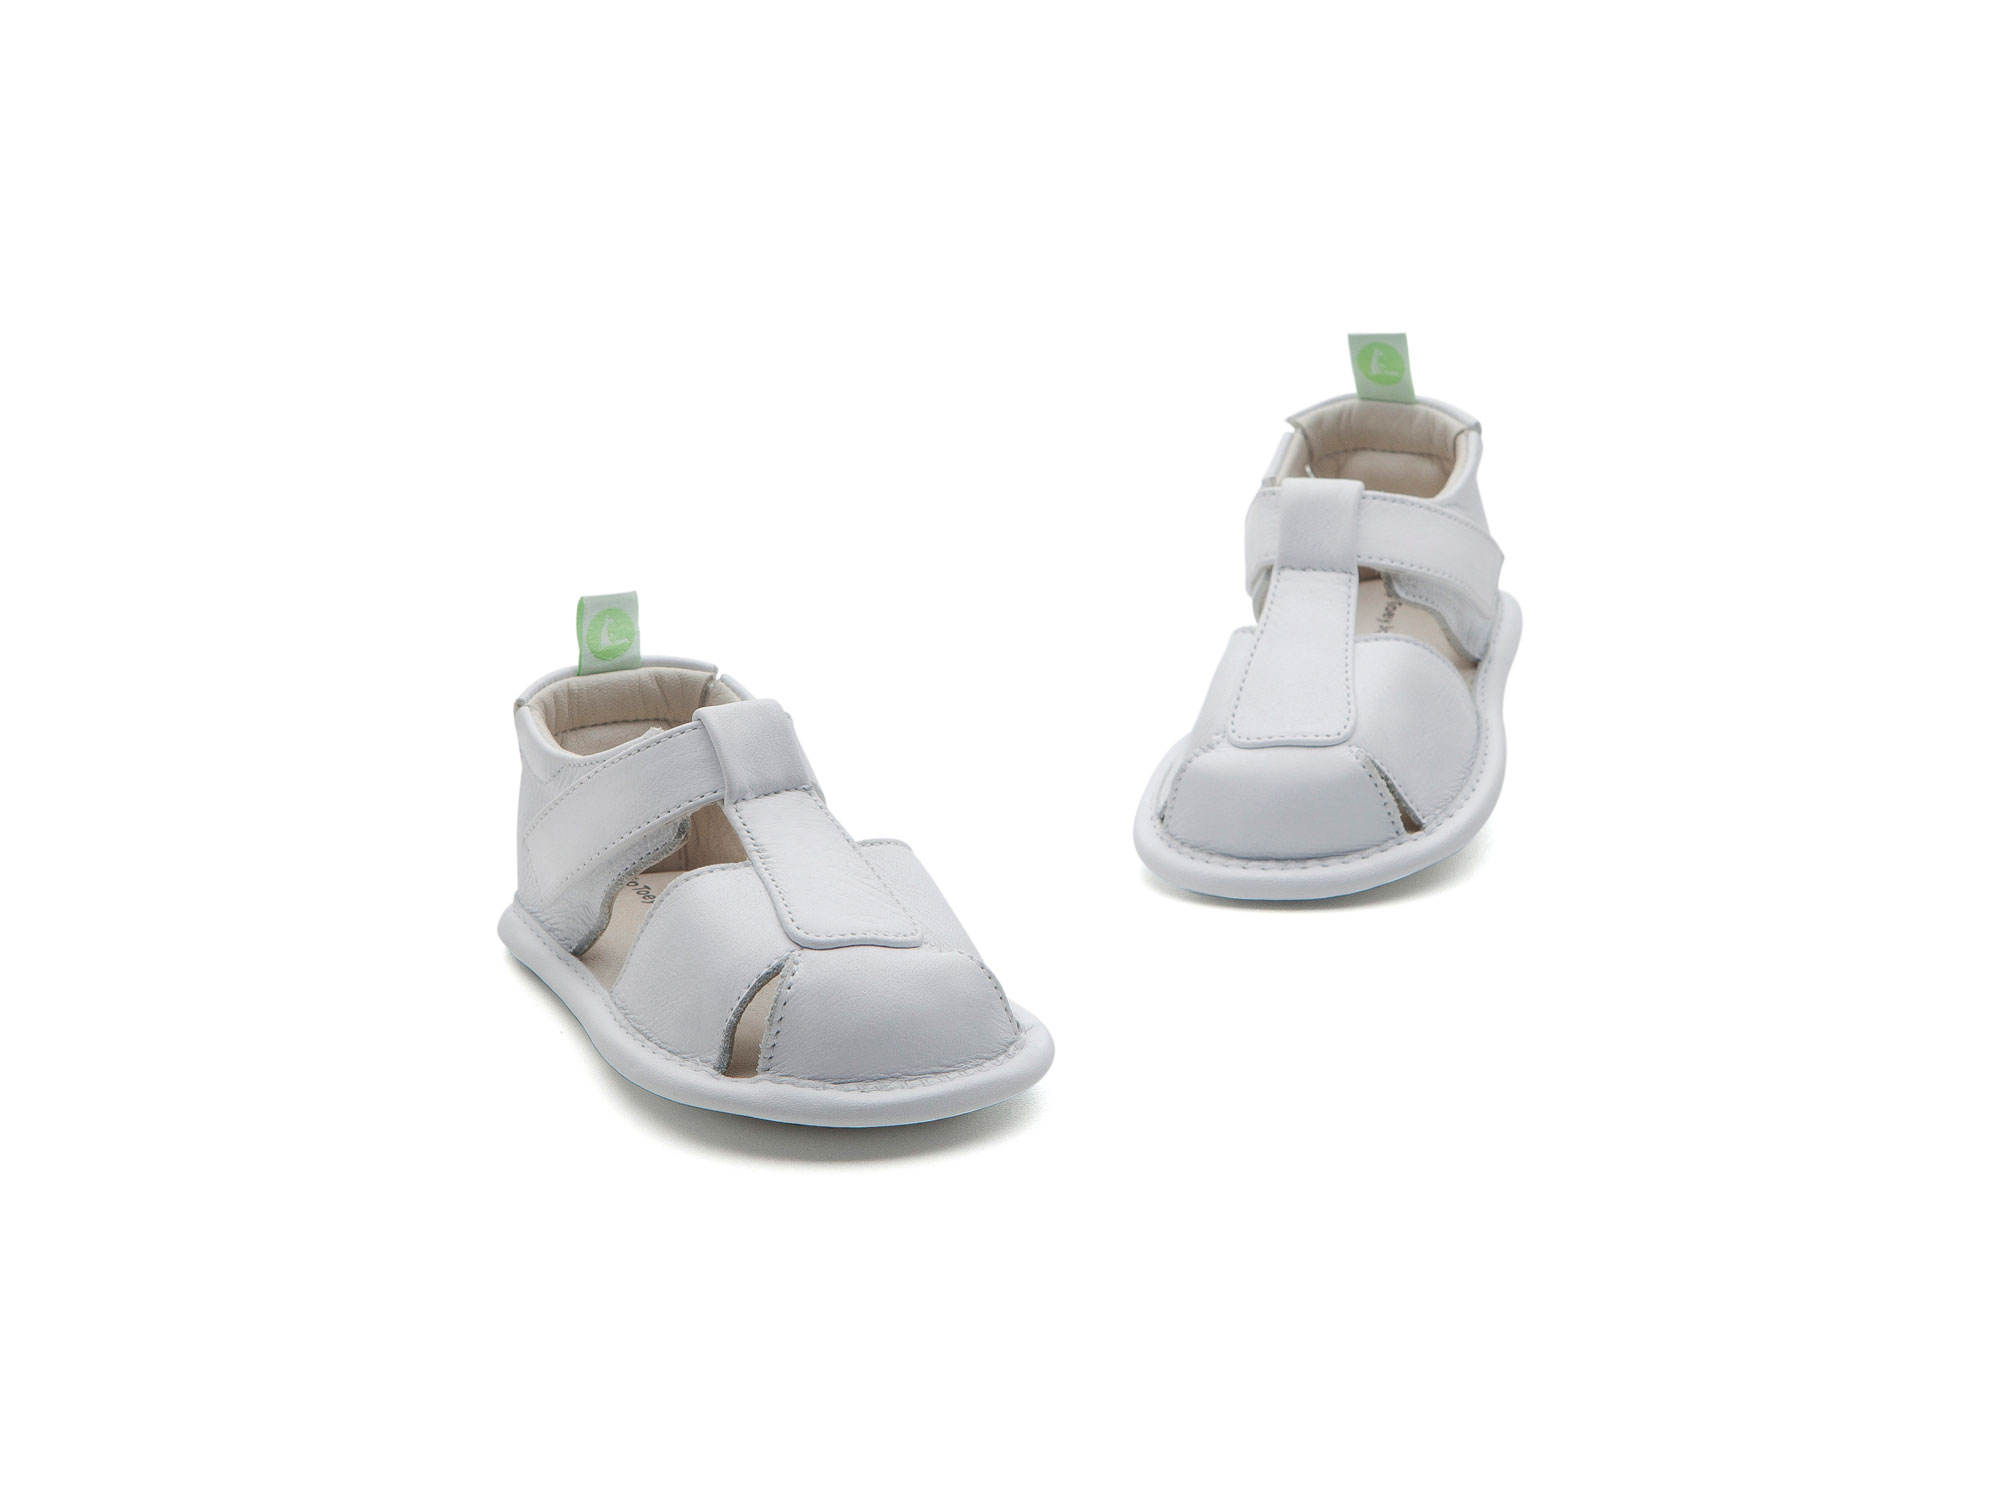 Sandal Parky White  Baby for ages 0 to 2 years - 1